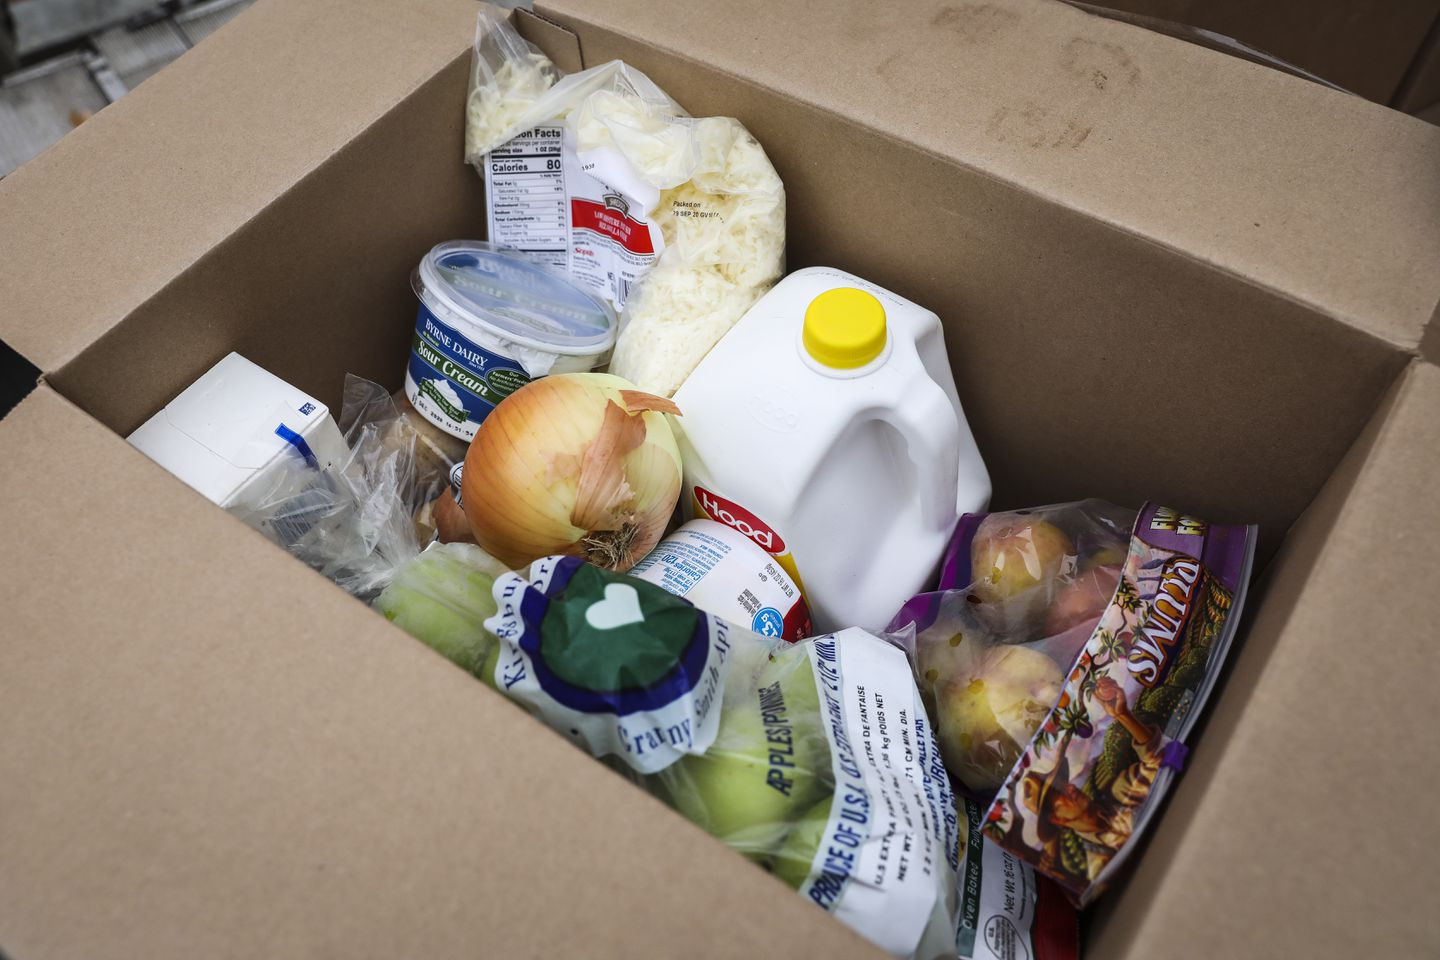 A box filled with produce, milk, and other essentials waits to be distributed at a Chelsea Pop-up Food Pantry, organized by the city of Chelsea.